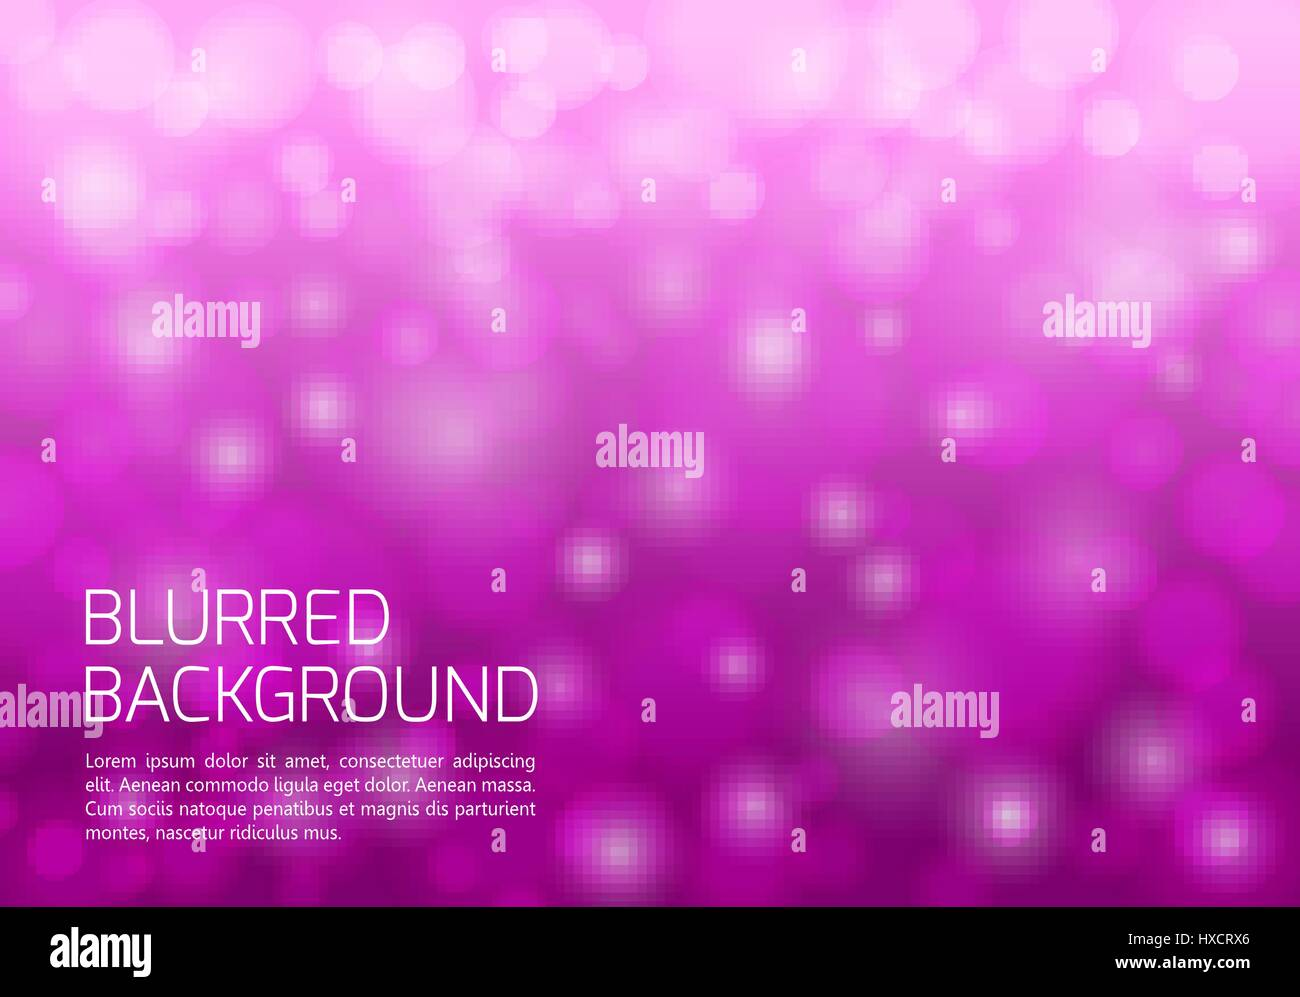 Pink blurred background with twinkly lights - Stock Vector